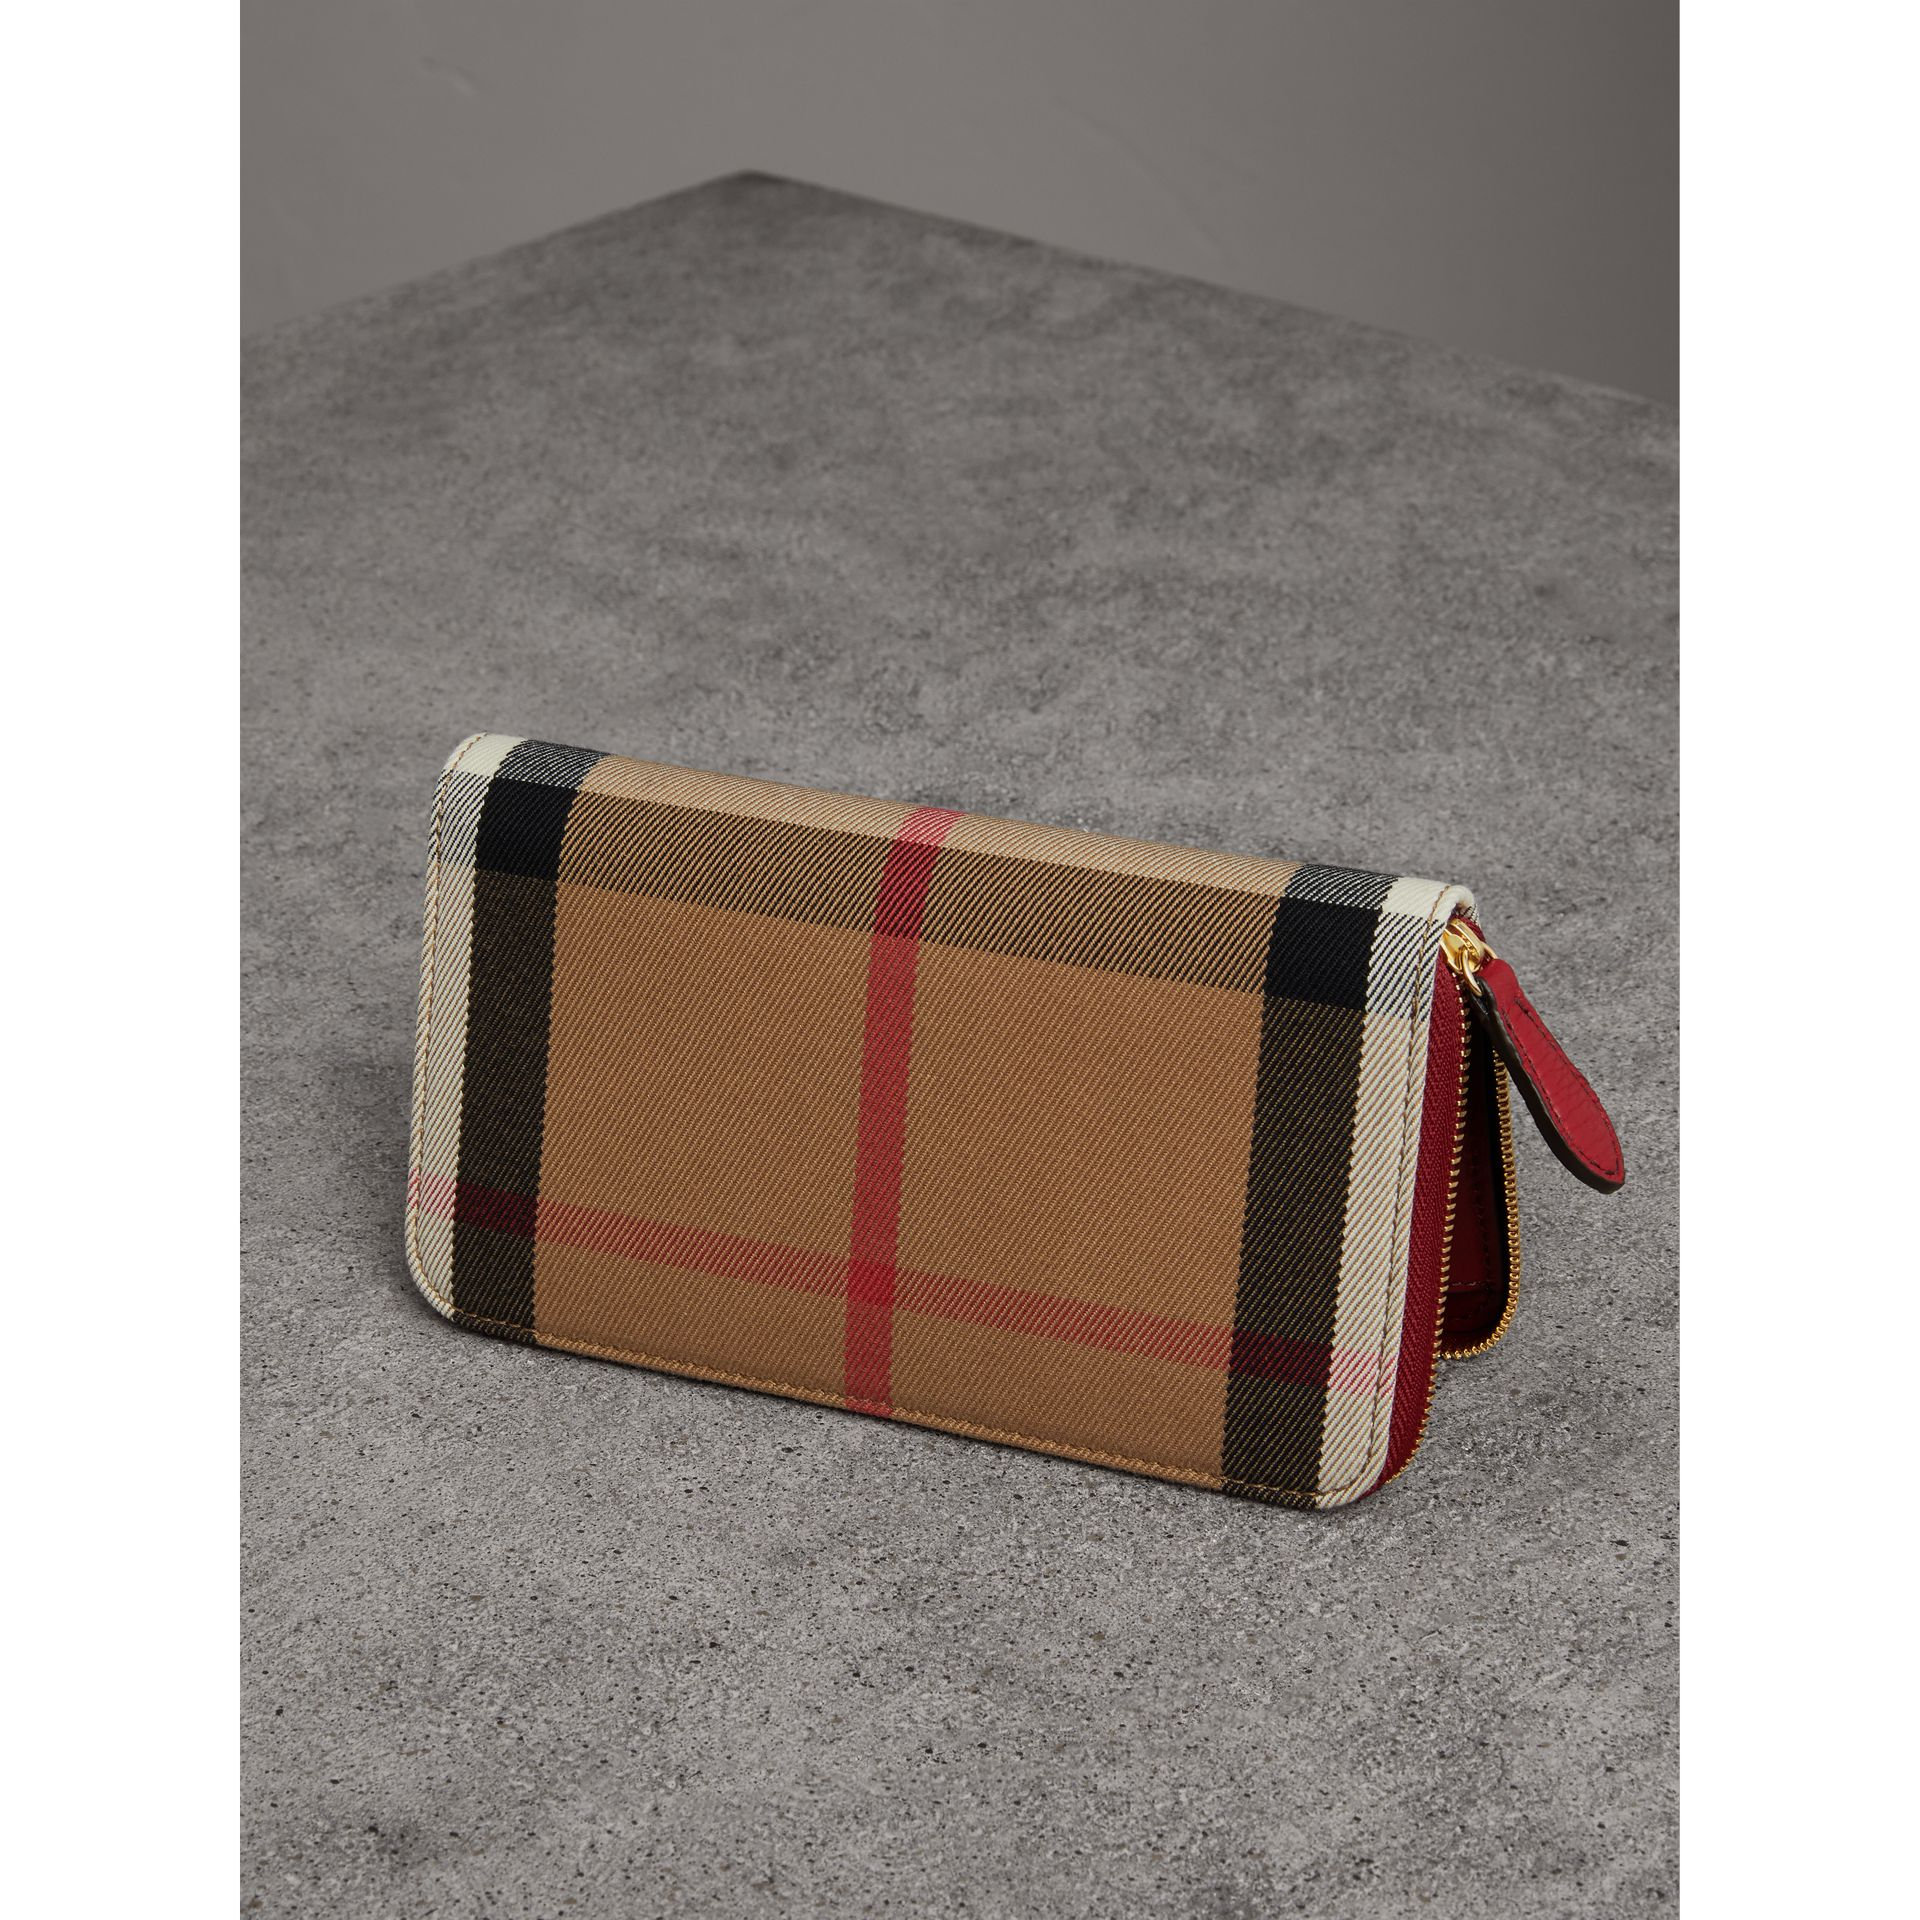 House Check and Leather Ziparound Wallet in Russet Red - Women | Burberry United Kingdom - gallery image 2